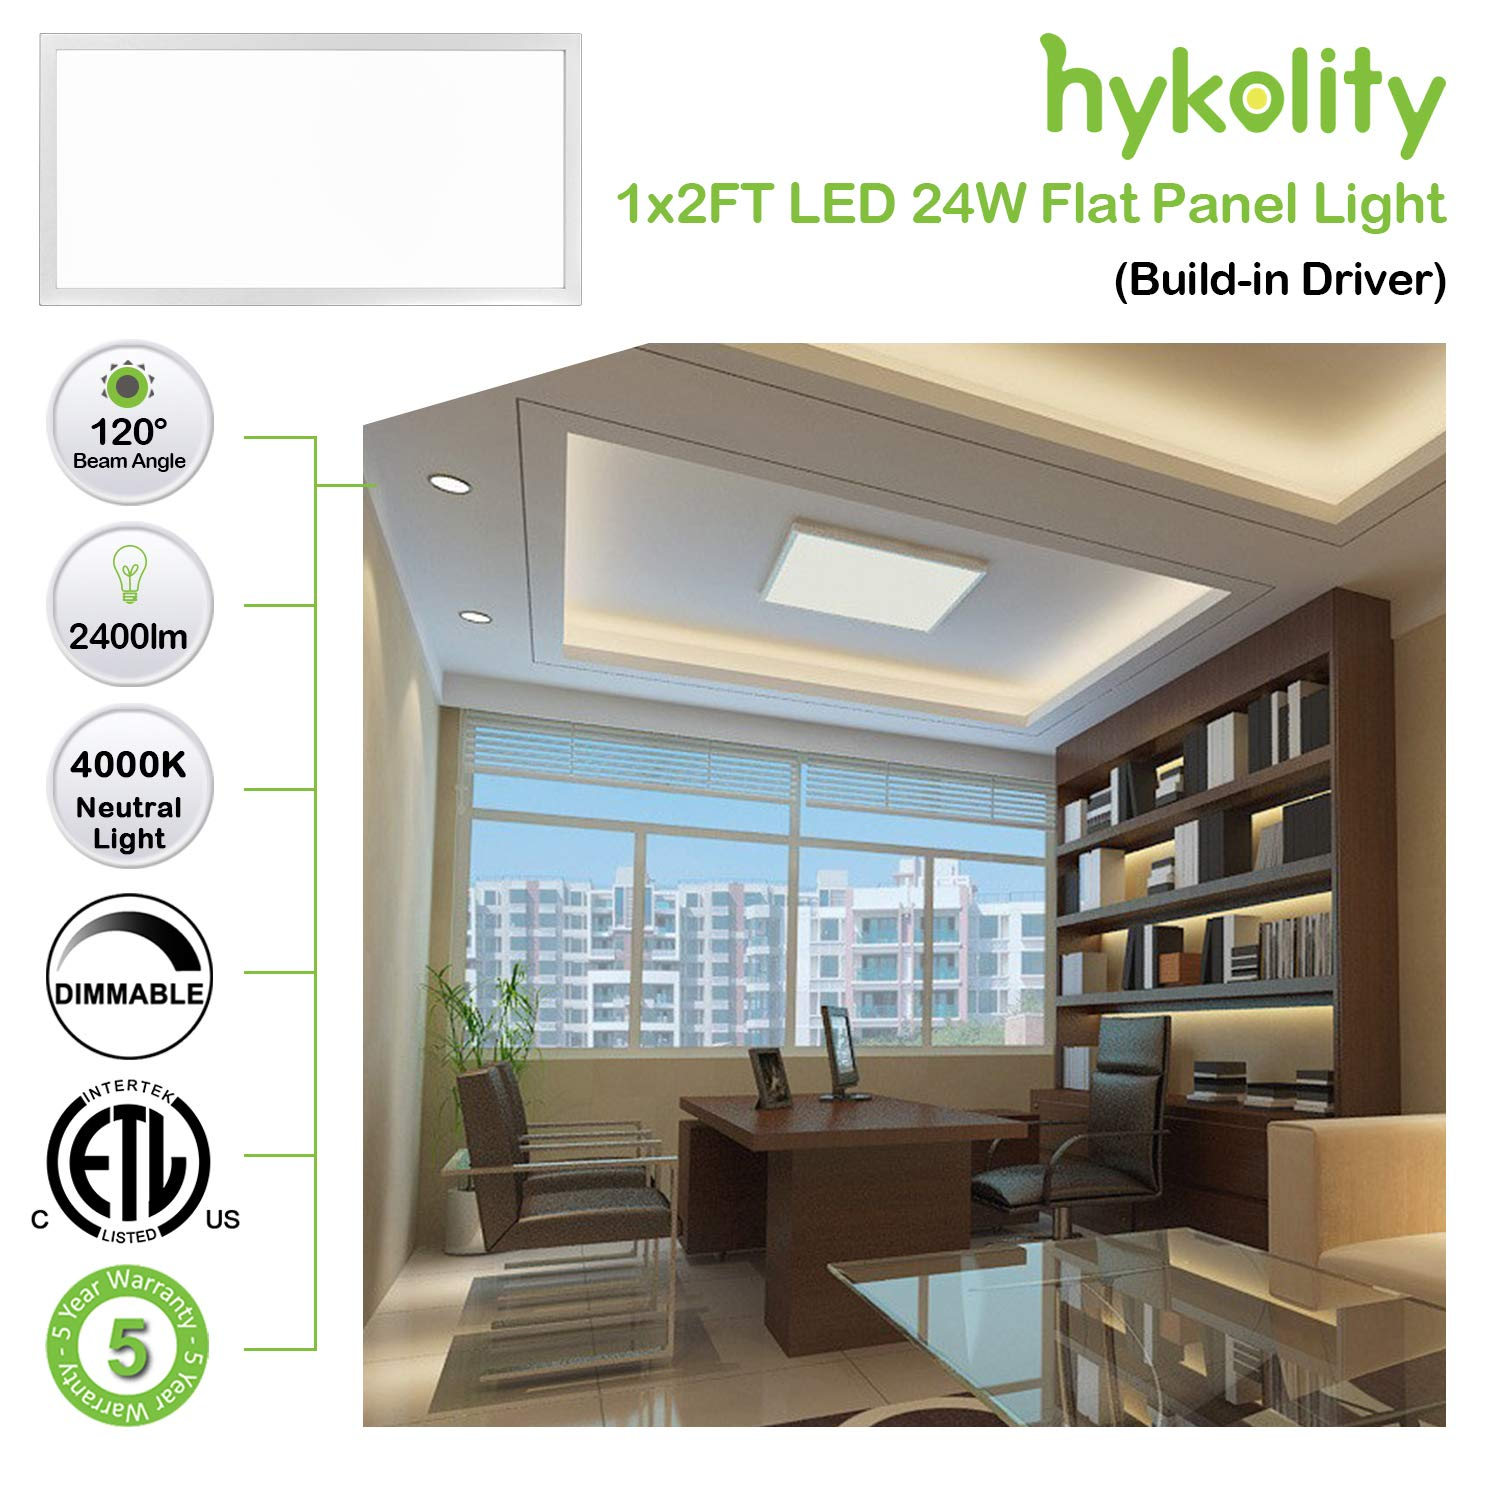 Hykolity 1x2 FT 24W 2400lm 4000K Triac Dimmable Flat LED Troffer Panel Light, Ultra Slim Flushmount Built-in Driver Drop Ceiling Light, Residential Surface ...